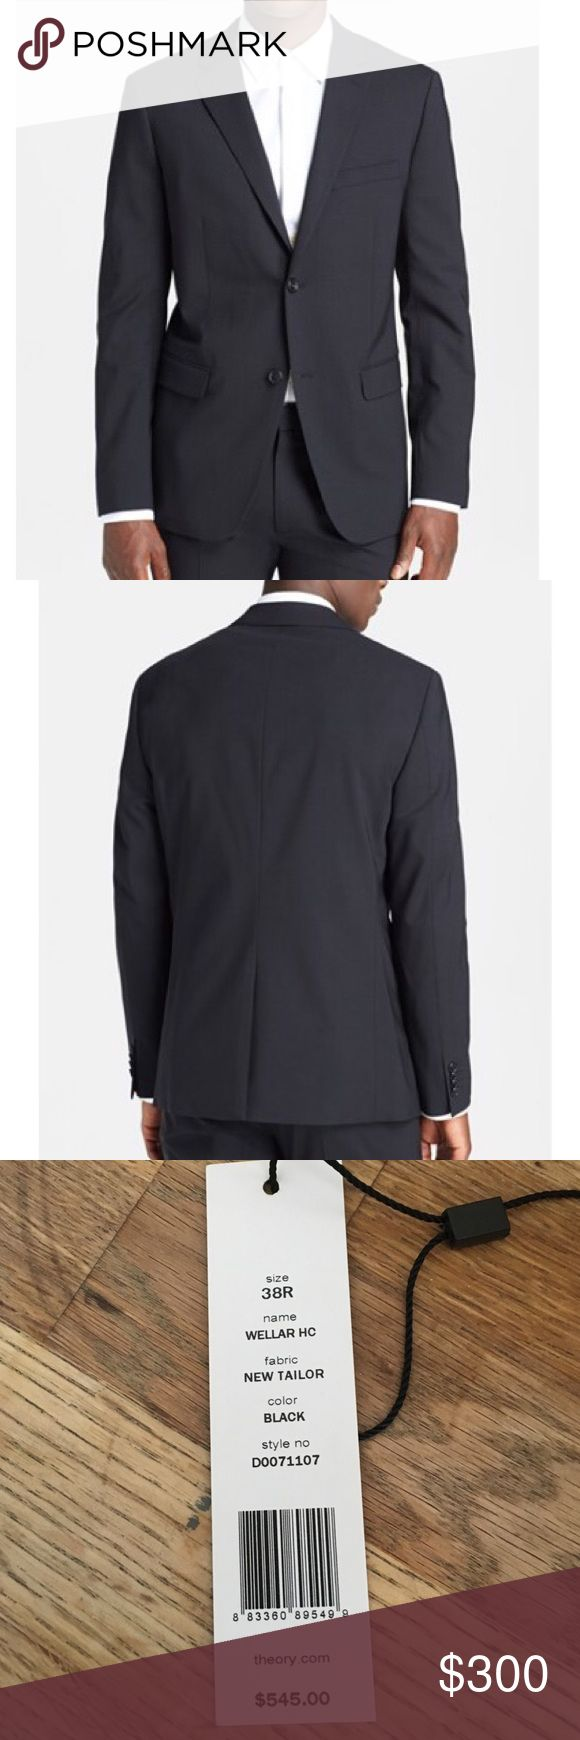 Theory Wellar men's suit jacket Stylist Sale. Worn only once. Theory Wellar HC New Tailor Black Suit Jacket. Theory Suits & Blazers Suits